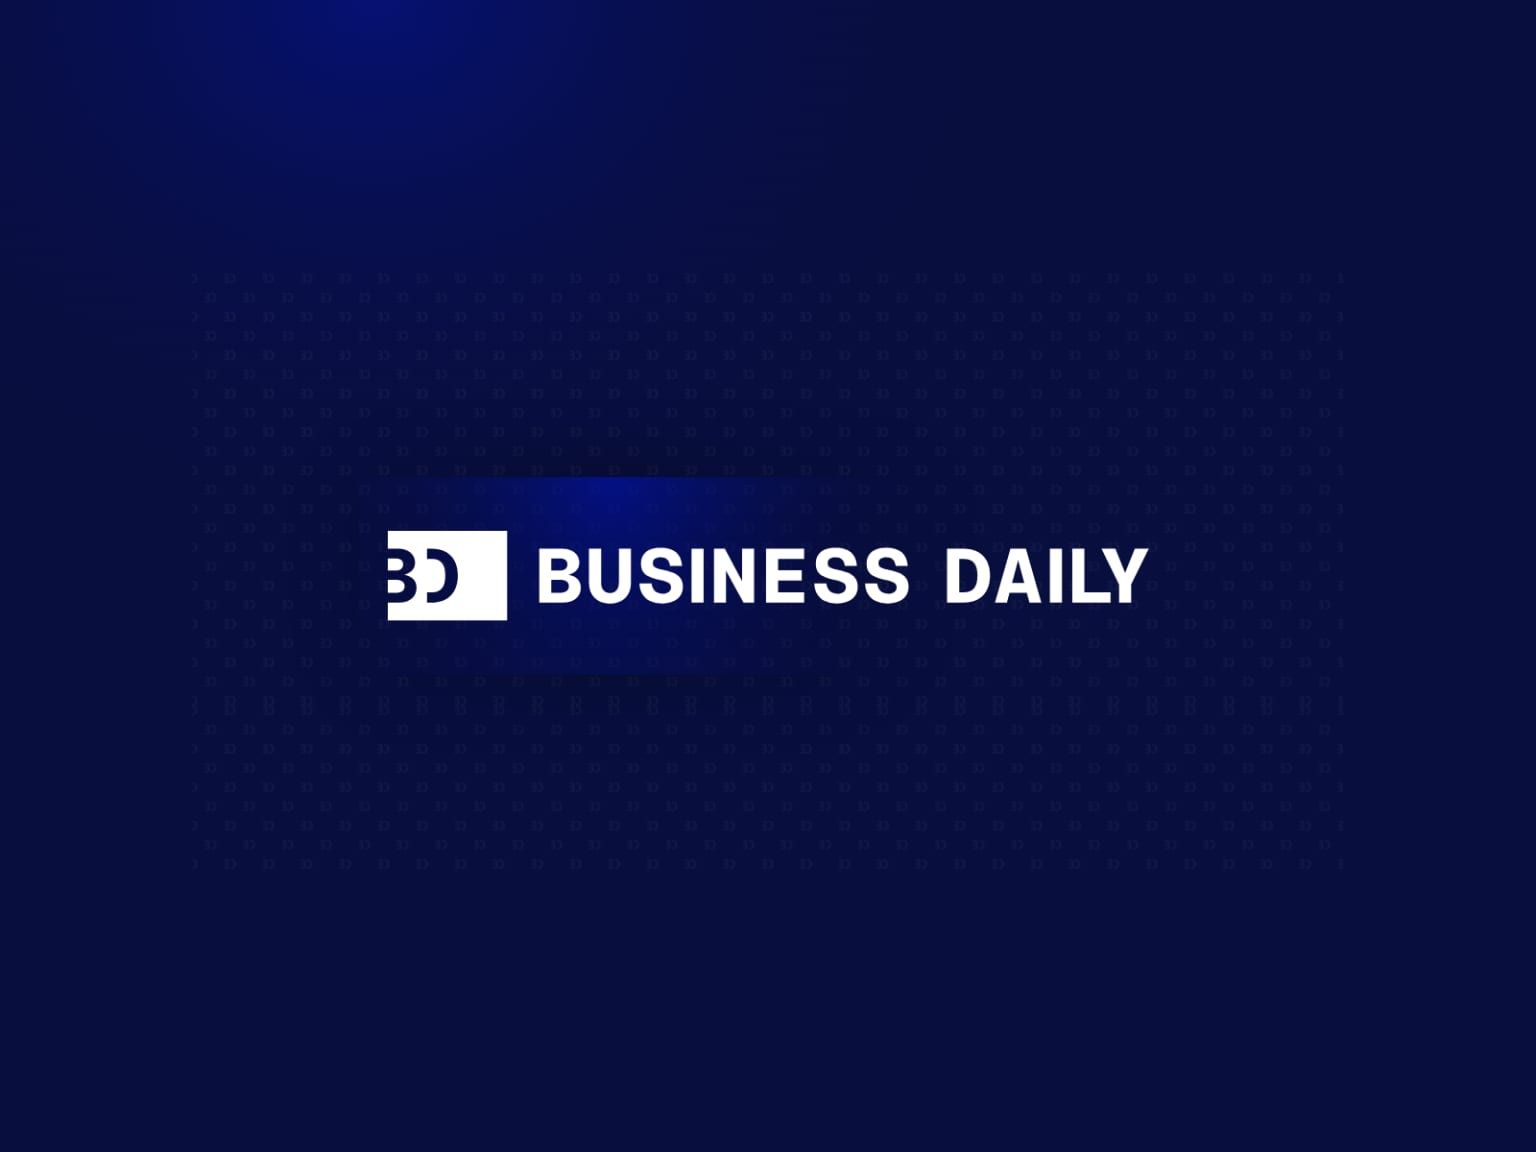 Business Daily Financial Portal